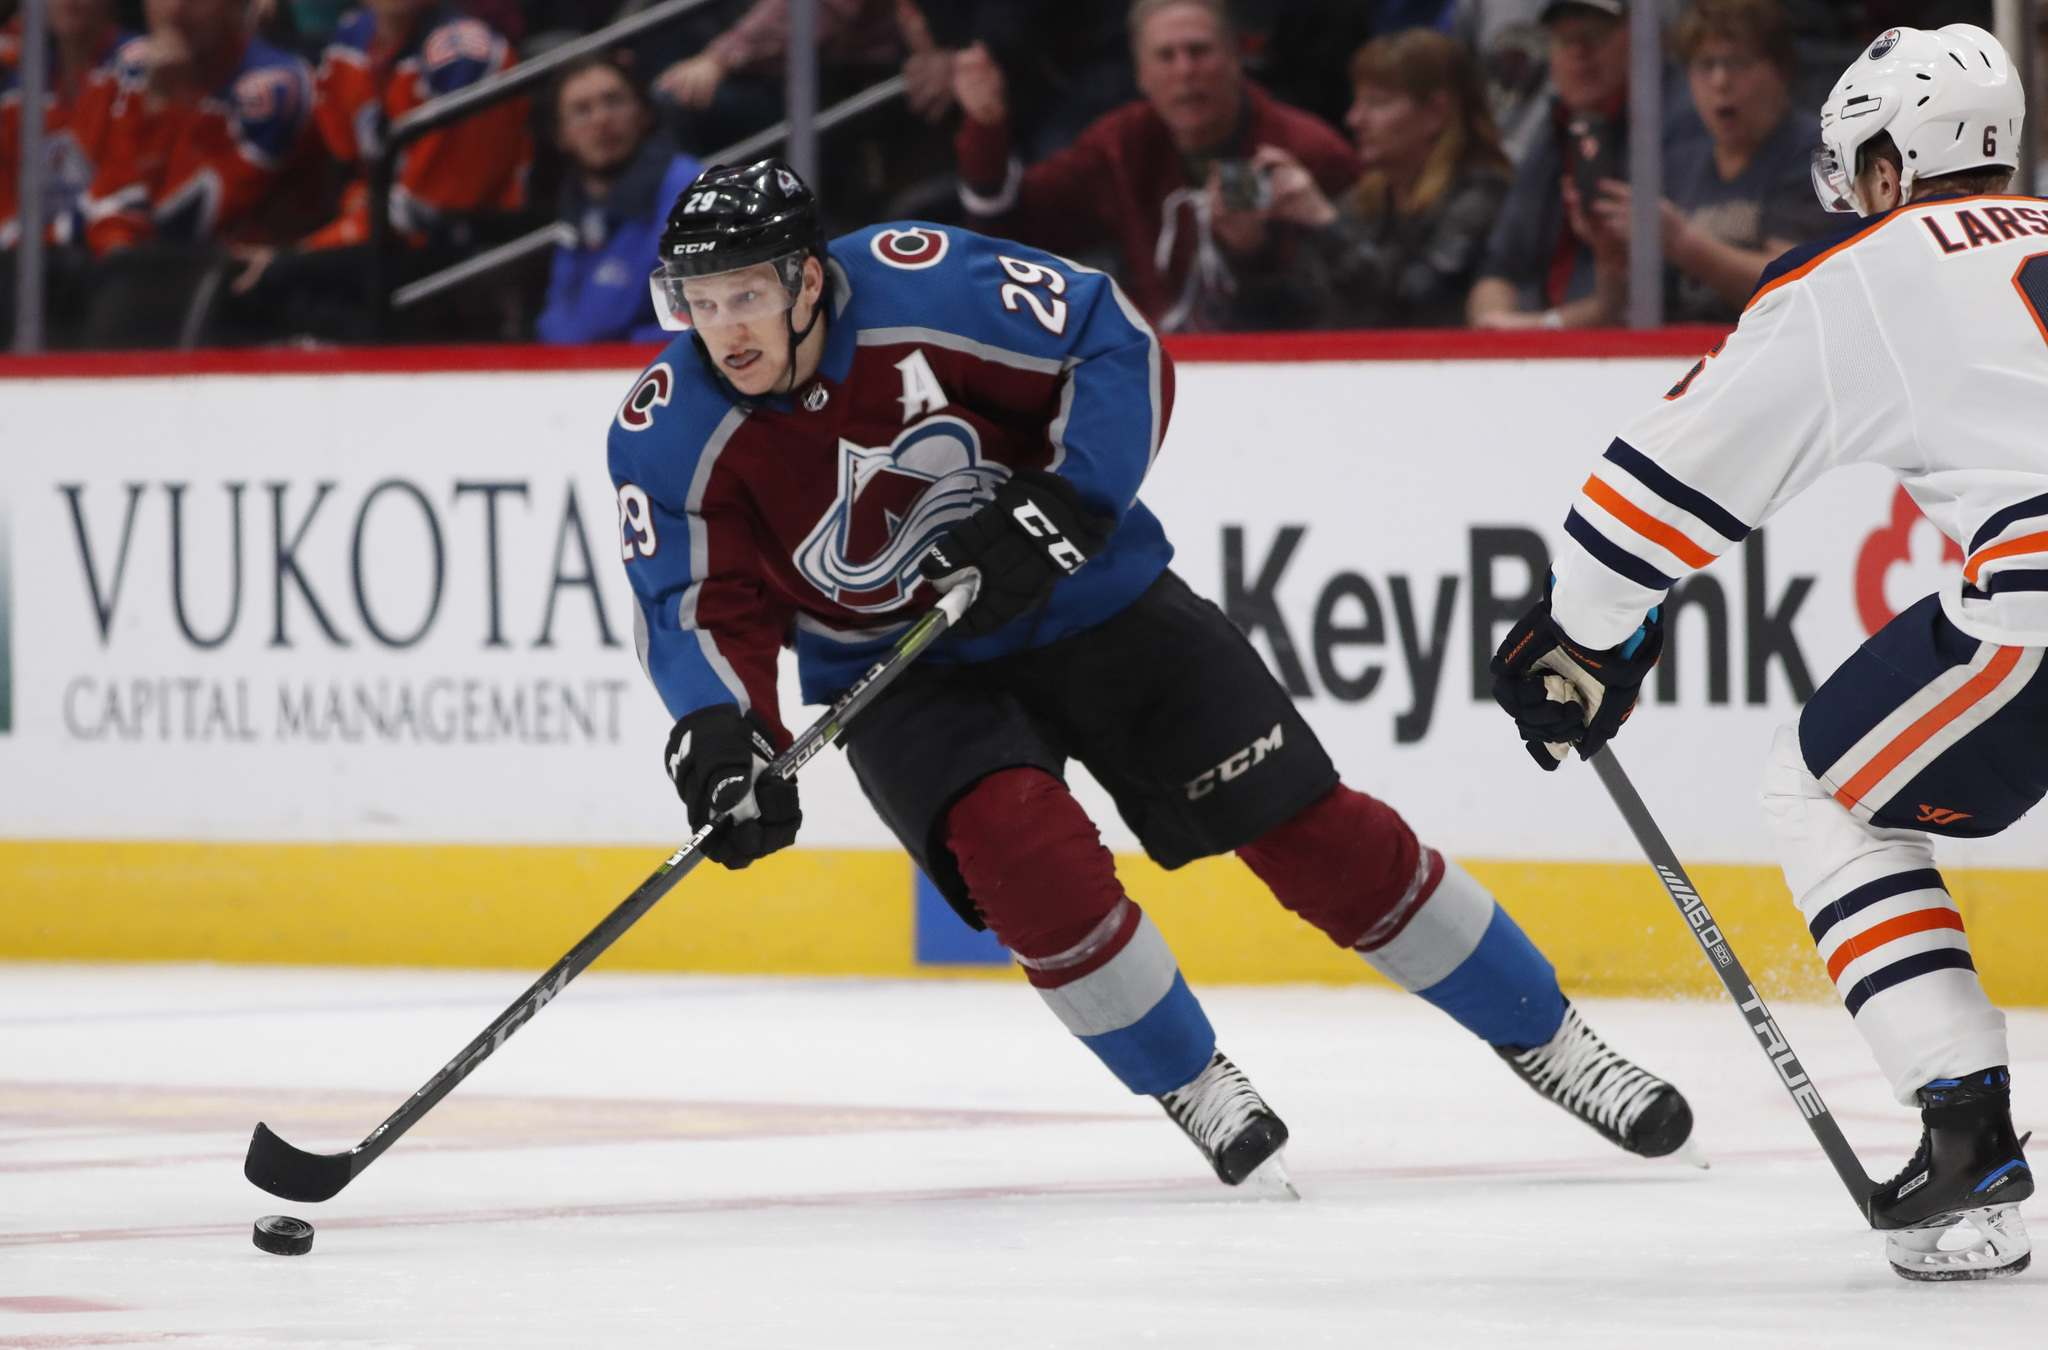 Avalanche centre Nathan MacKinnon is tied for second in the NHL in goals scored with 11 and is third overall in points with 21 as of Tuesday afternoon. (David Zalubowski / The Associated Press files)</p>